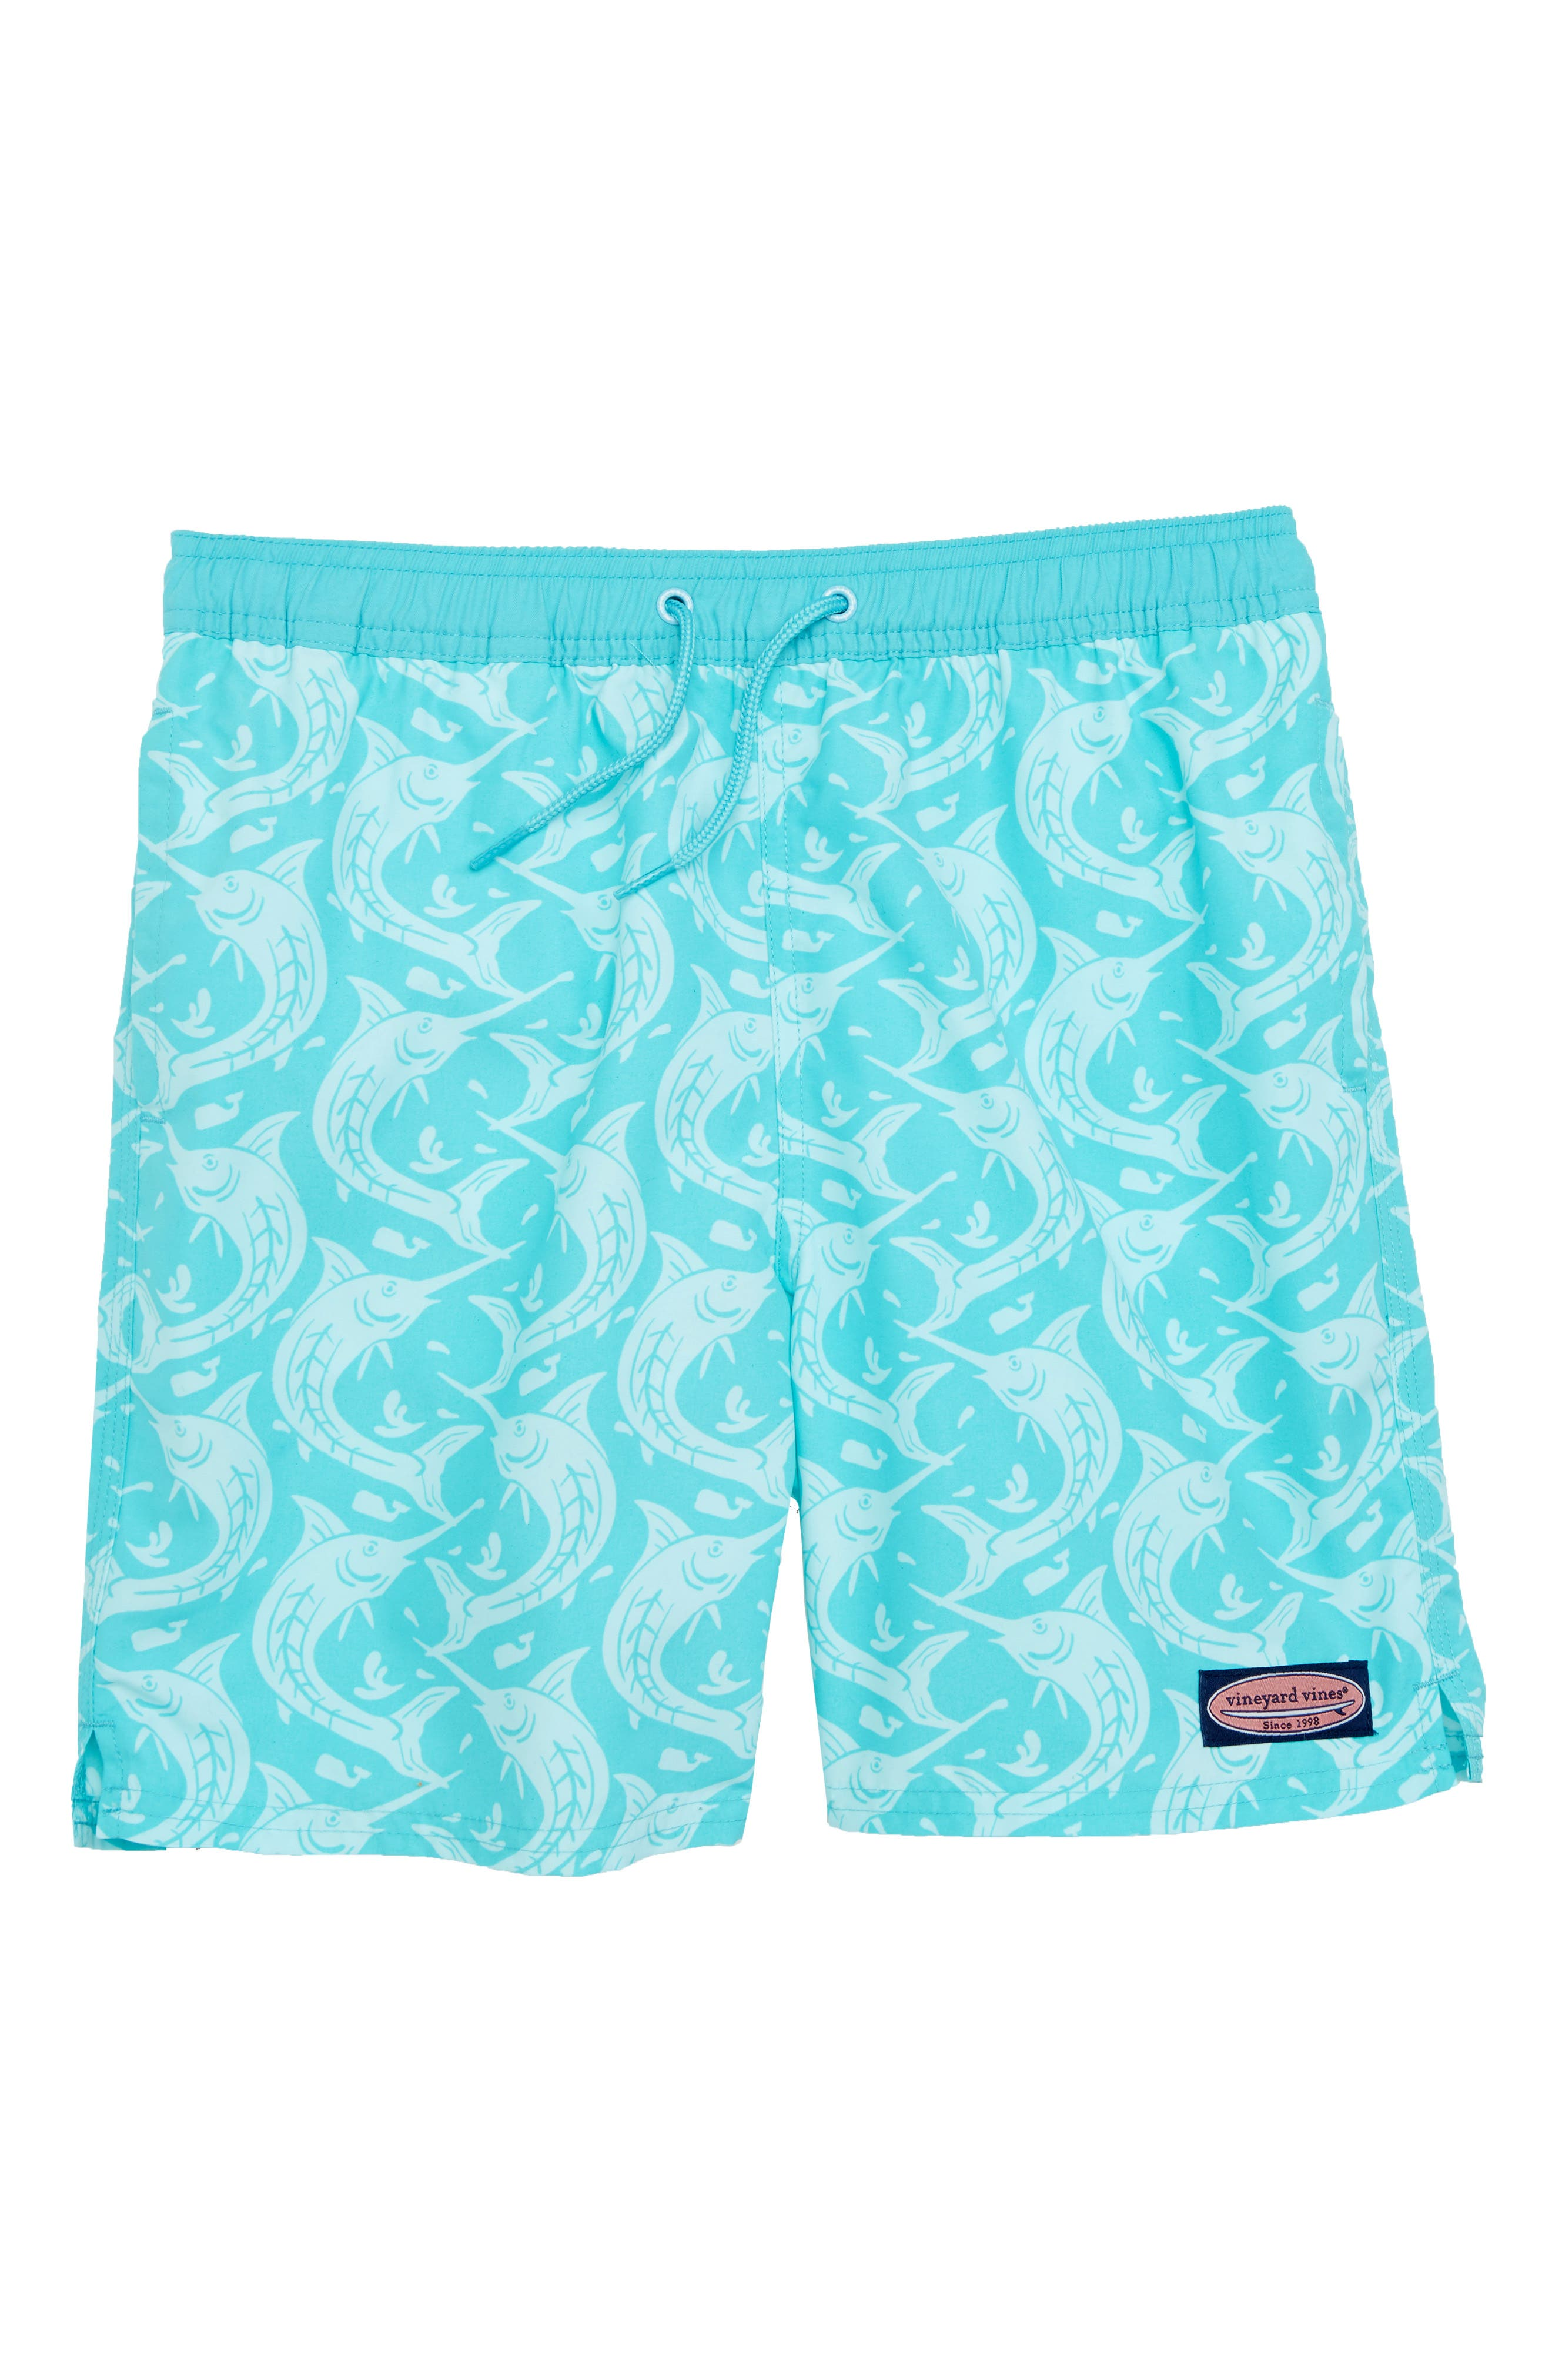 Marlin out of Water Swim Trunks,                         Main,                         color, 440